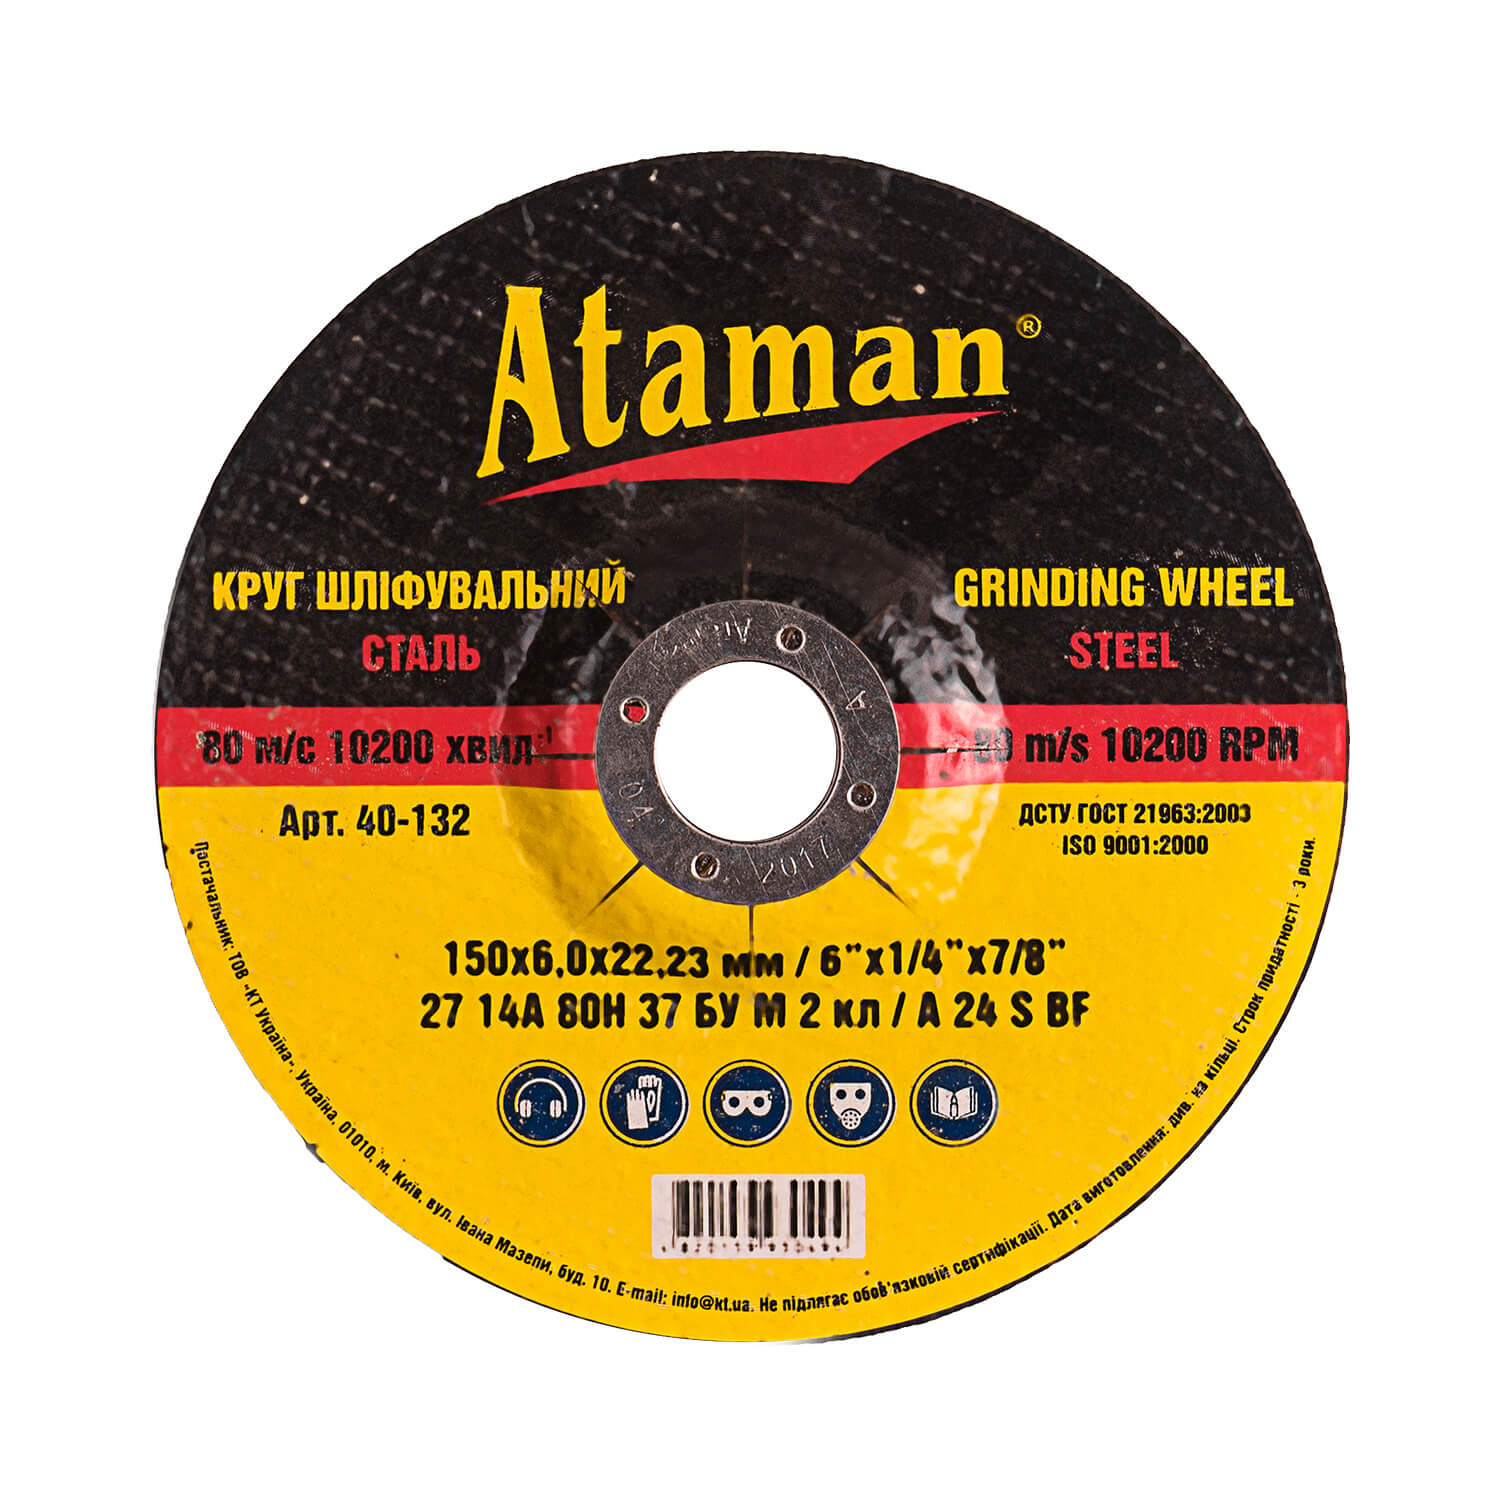 Grinding wheel for metal Ataman 27 14А 150х6.0х22.23